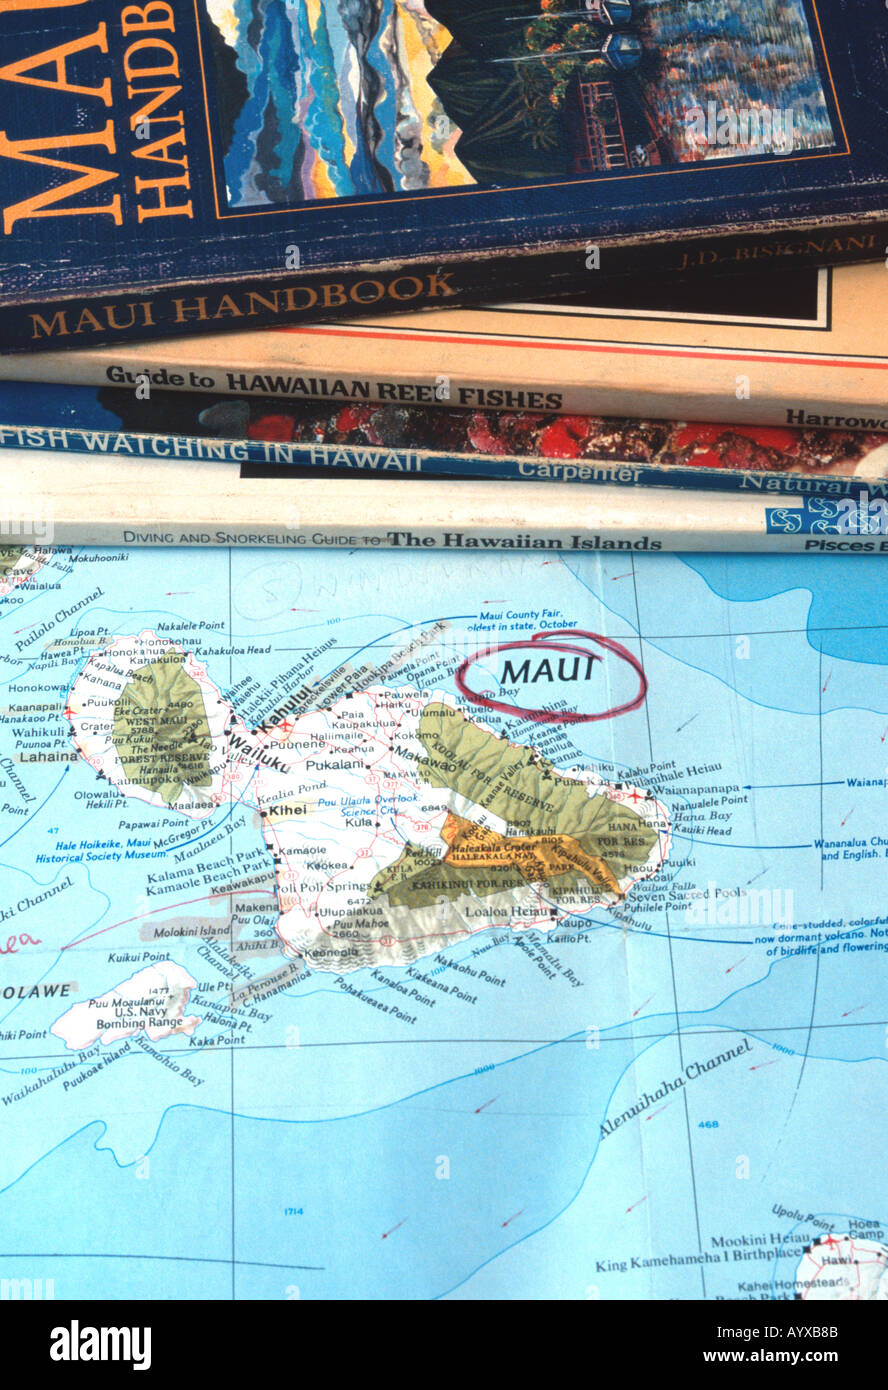 Maui Handbook and other guidebooks on map